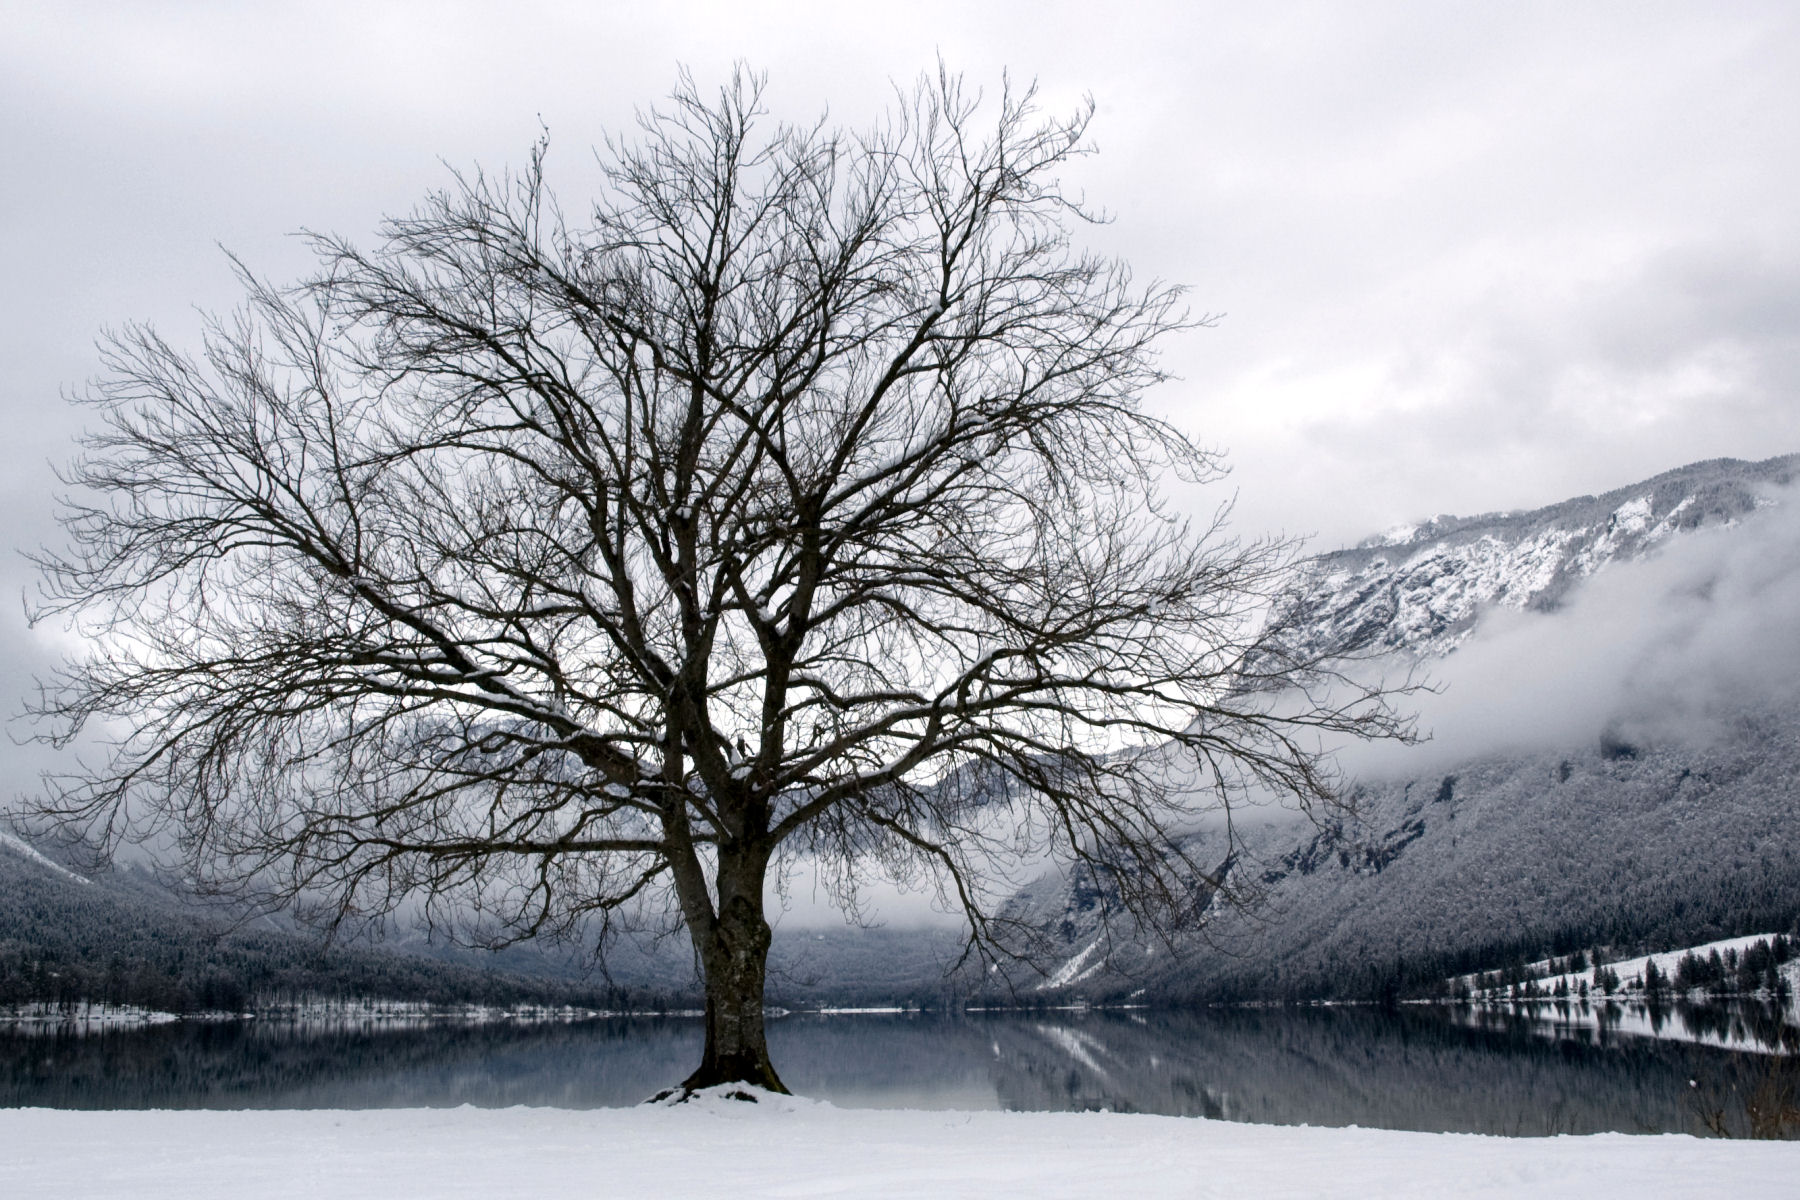 The famous tree at Lake Bohinj in winter